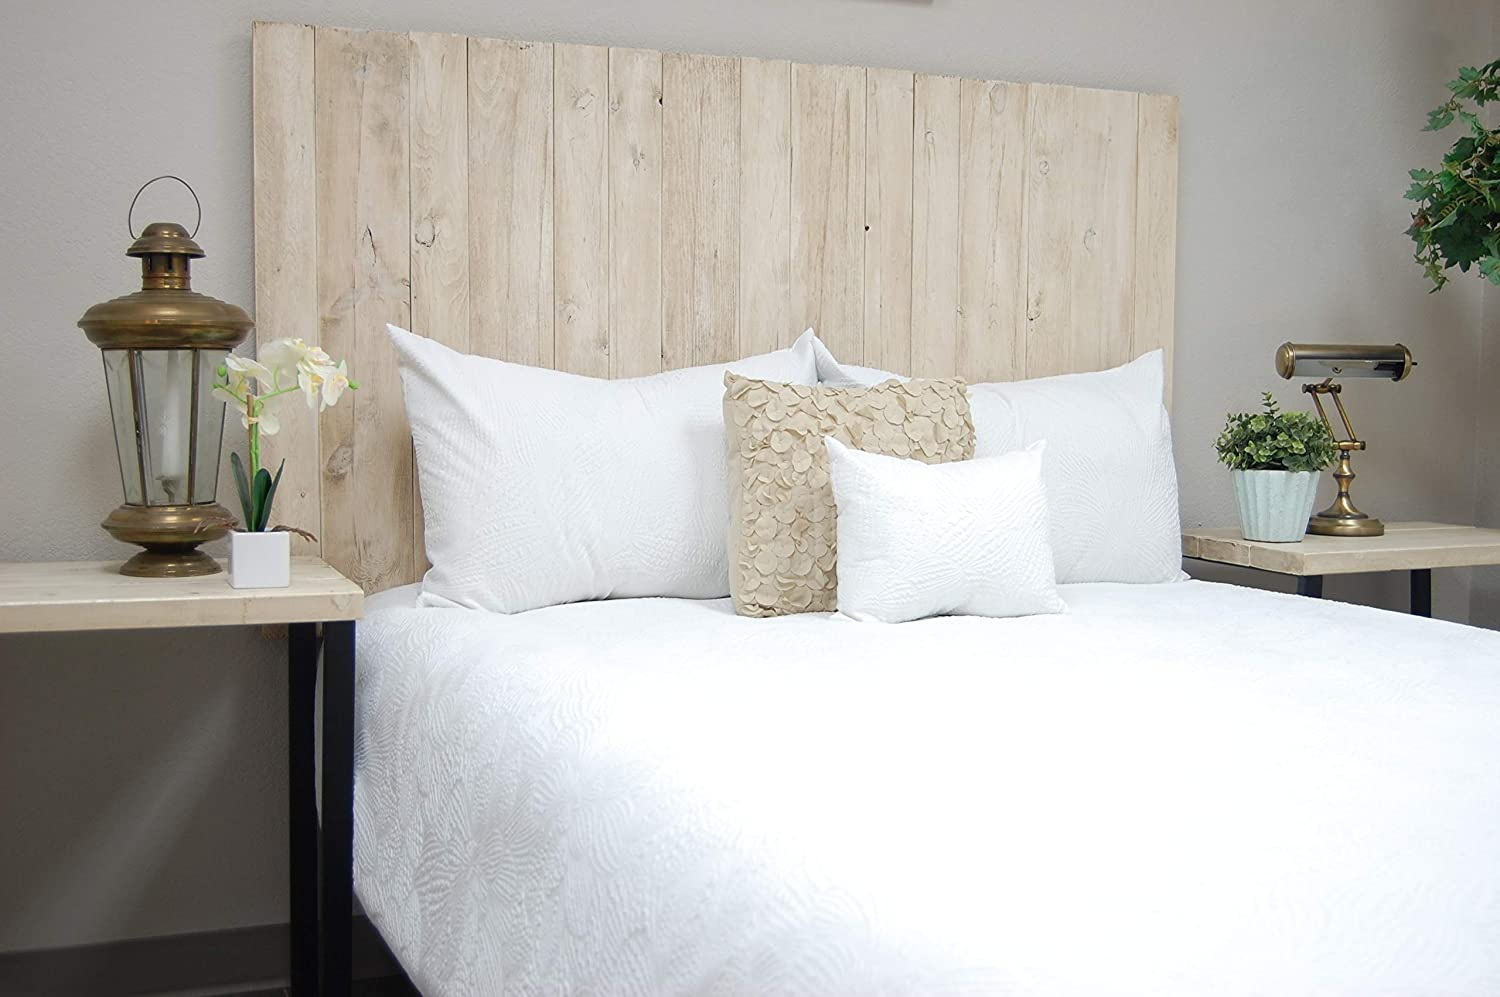 Antique White Headboard Weathered King Size, Hanger Style, Handcrafted. Mounts on Wall. Easy Installation